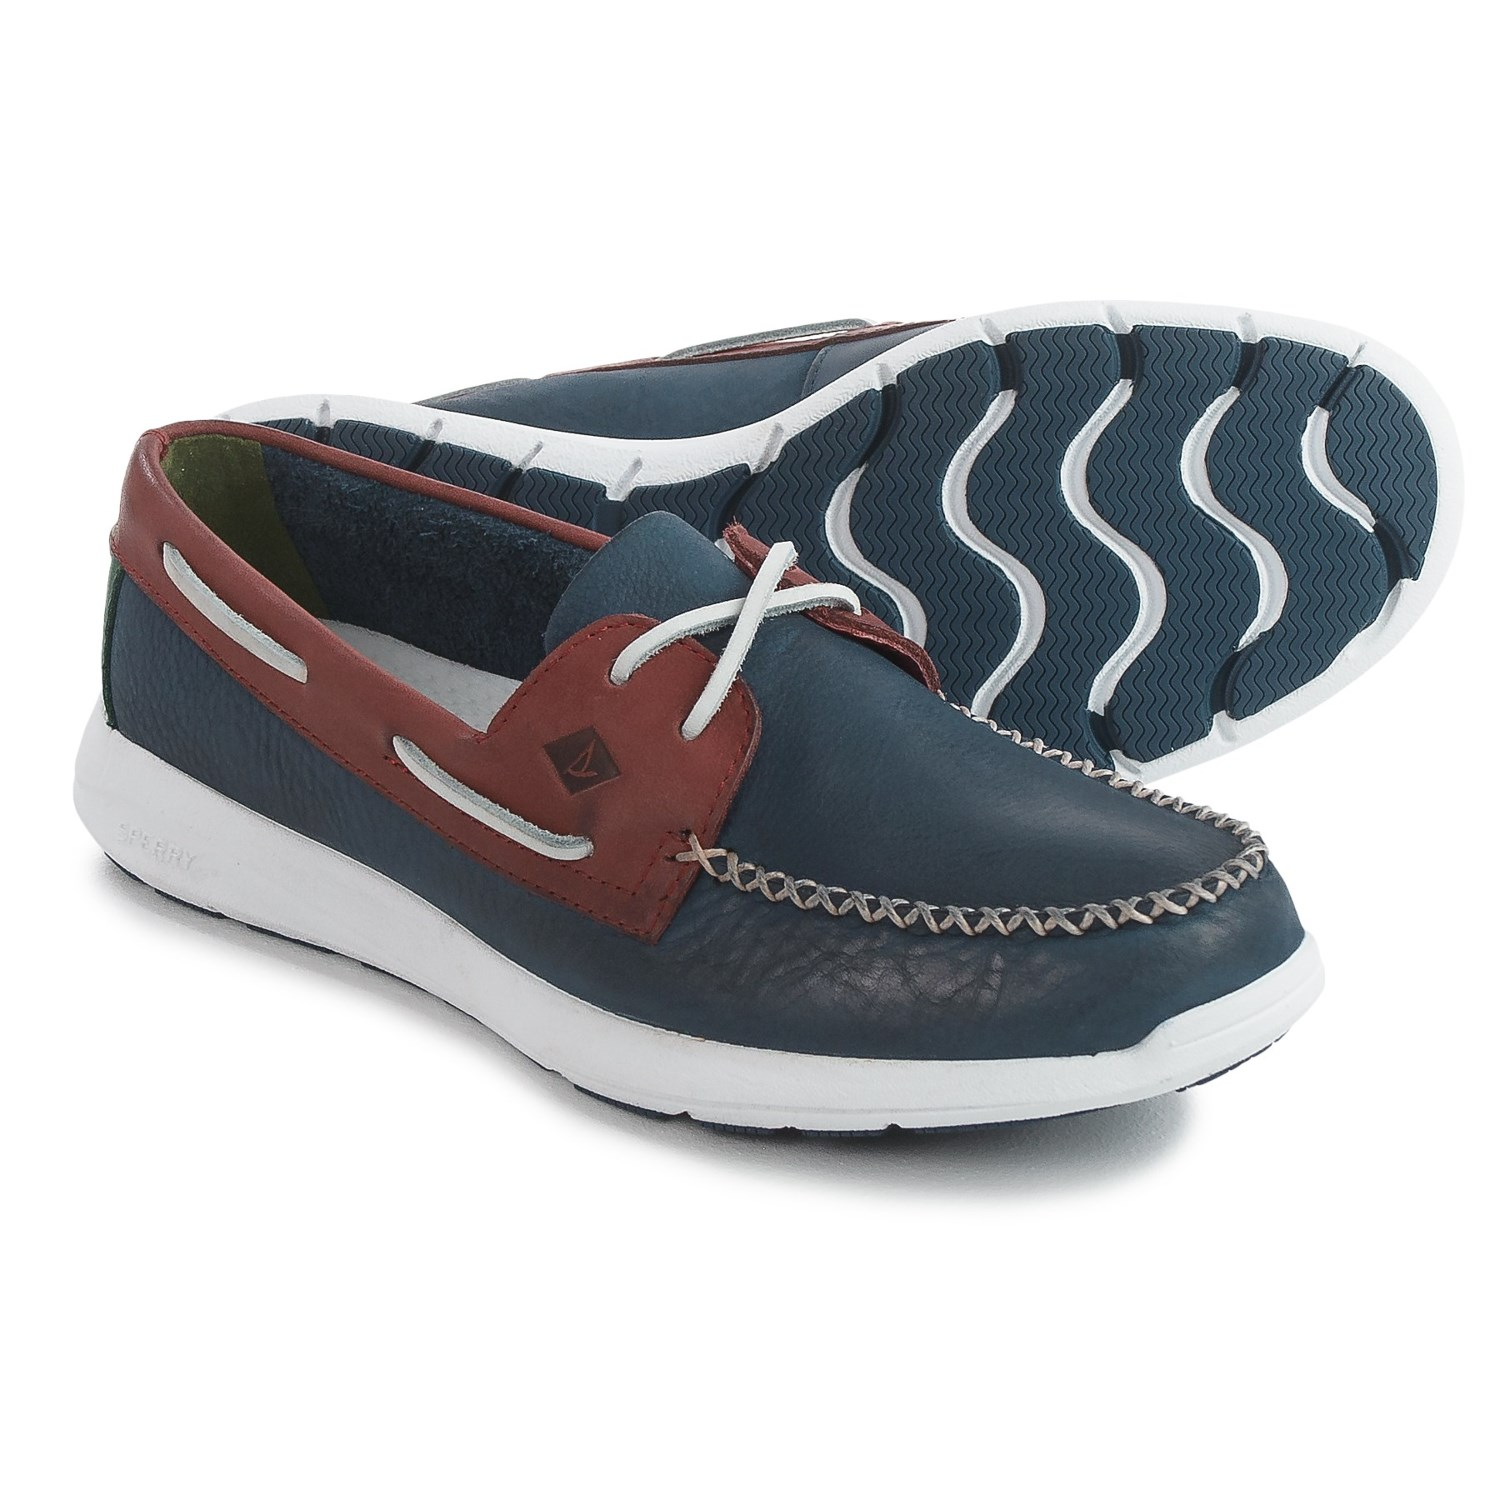 Permalink to Sperry Boat Shoes Men